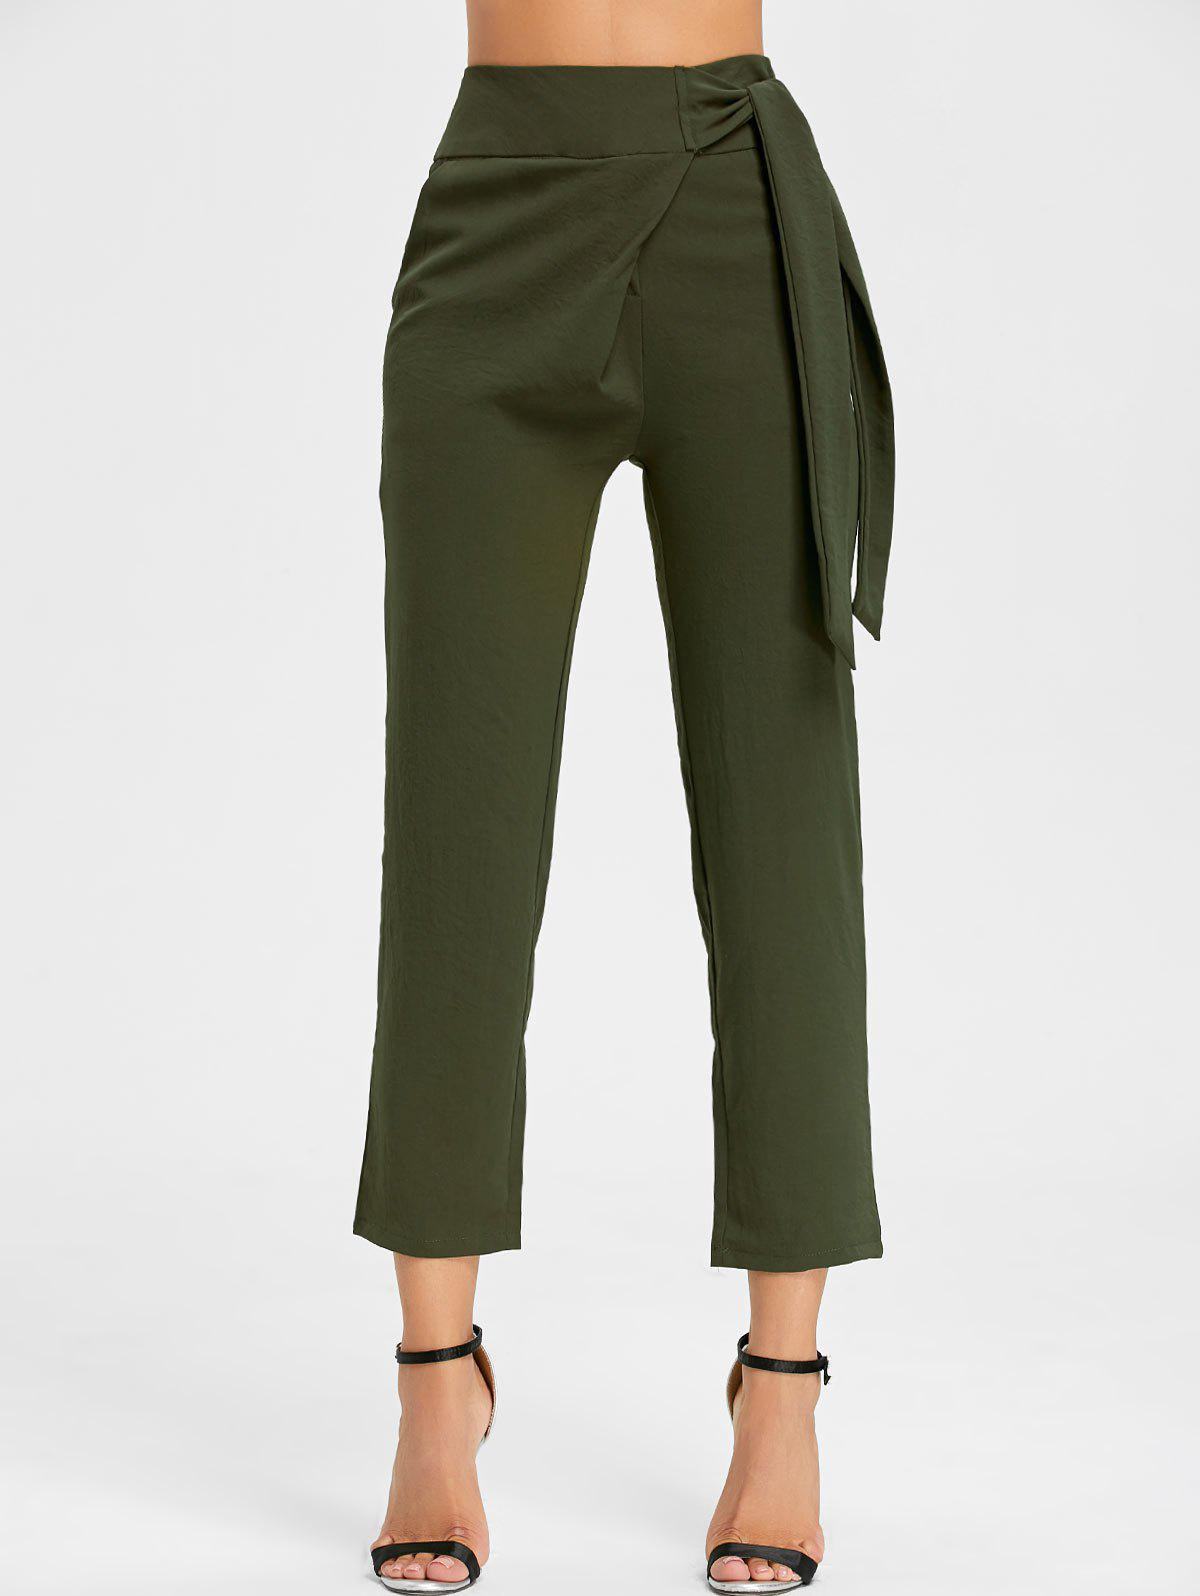 High Wasited Tie Up Pants - ARMY GREEN M